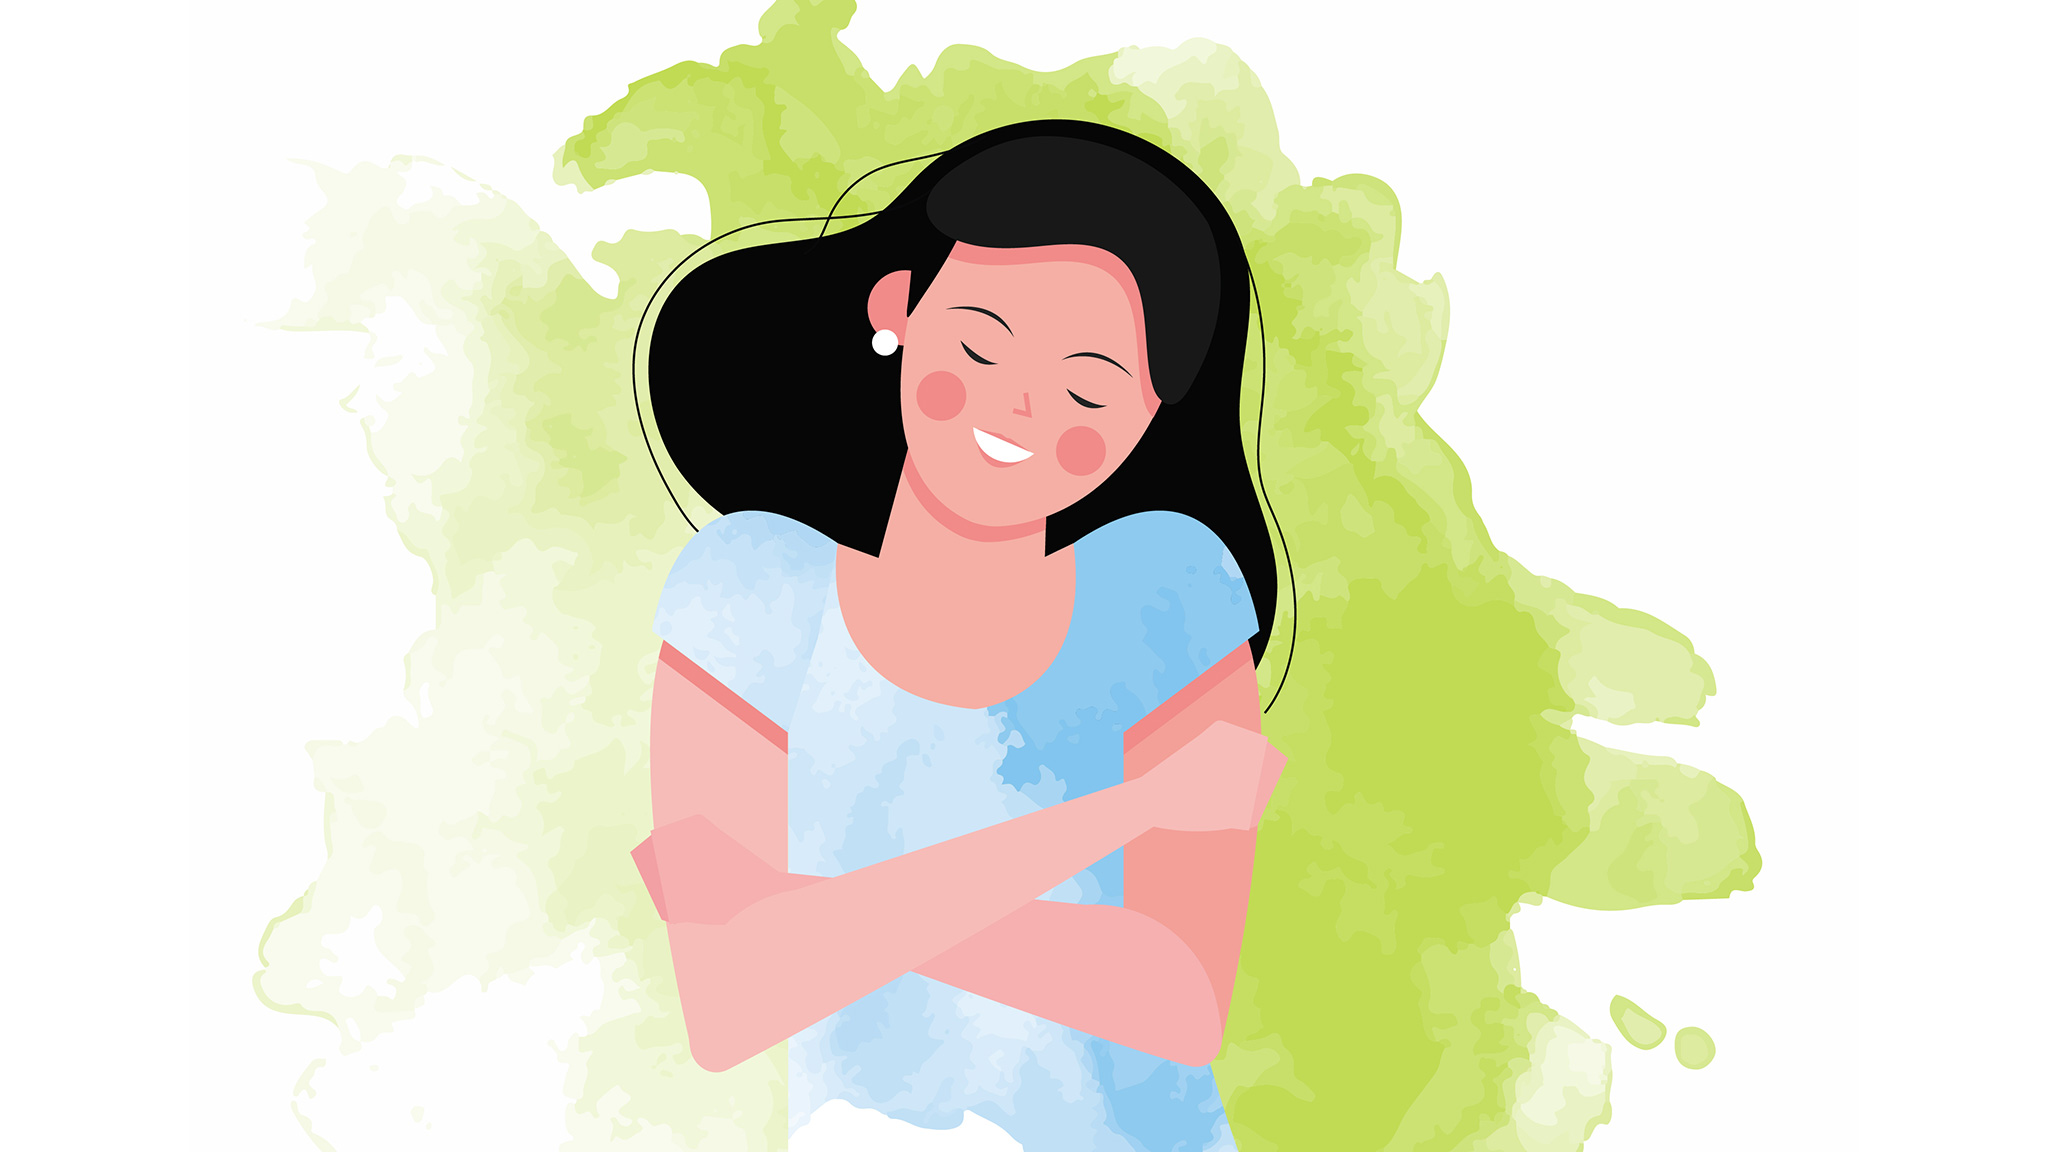 Vector Illustration Of Young Woman Smiling And Hugging Herself, Joy And Pleasure Concept